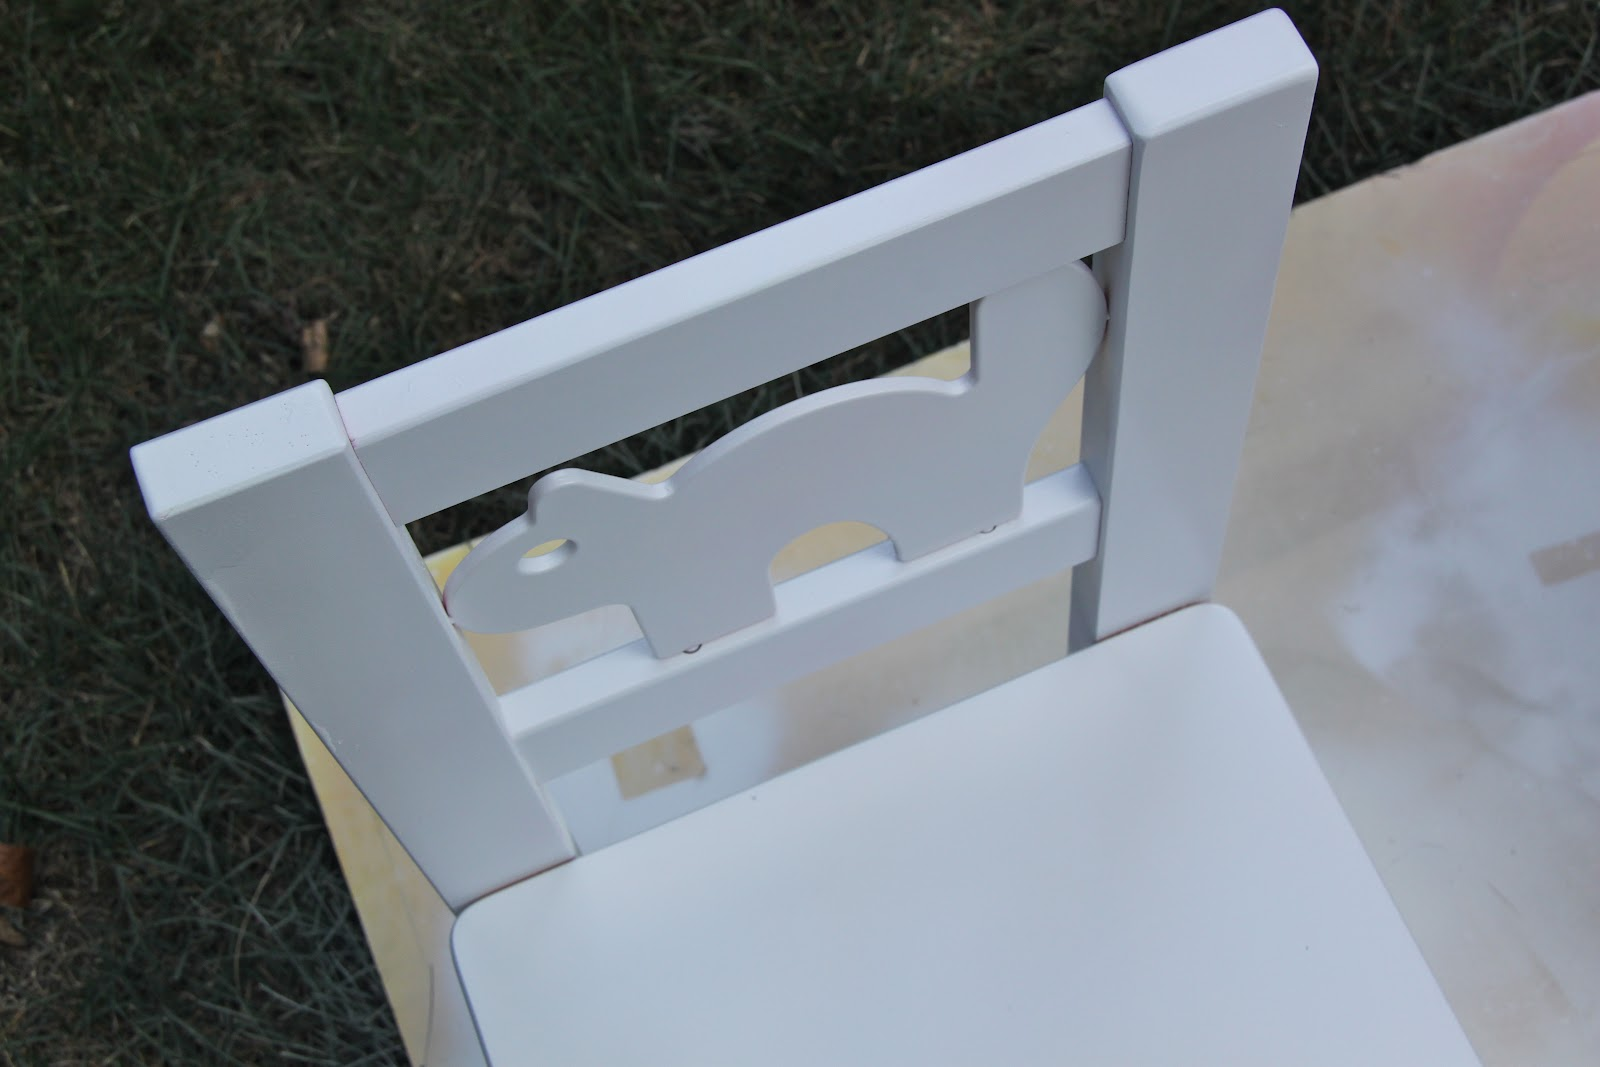 How To Paint Ikea Laminate Furniture Tutorial Smashed